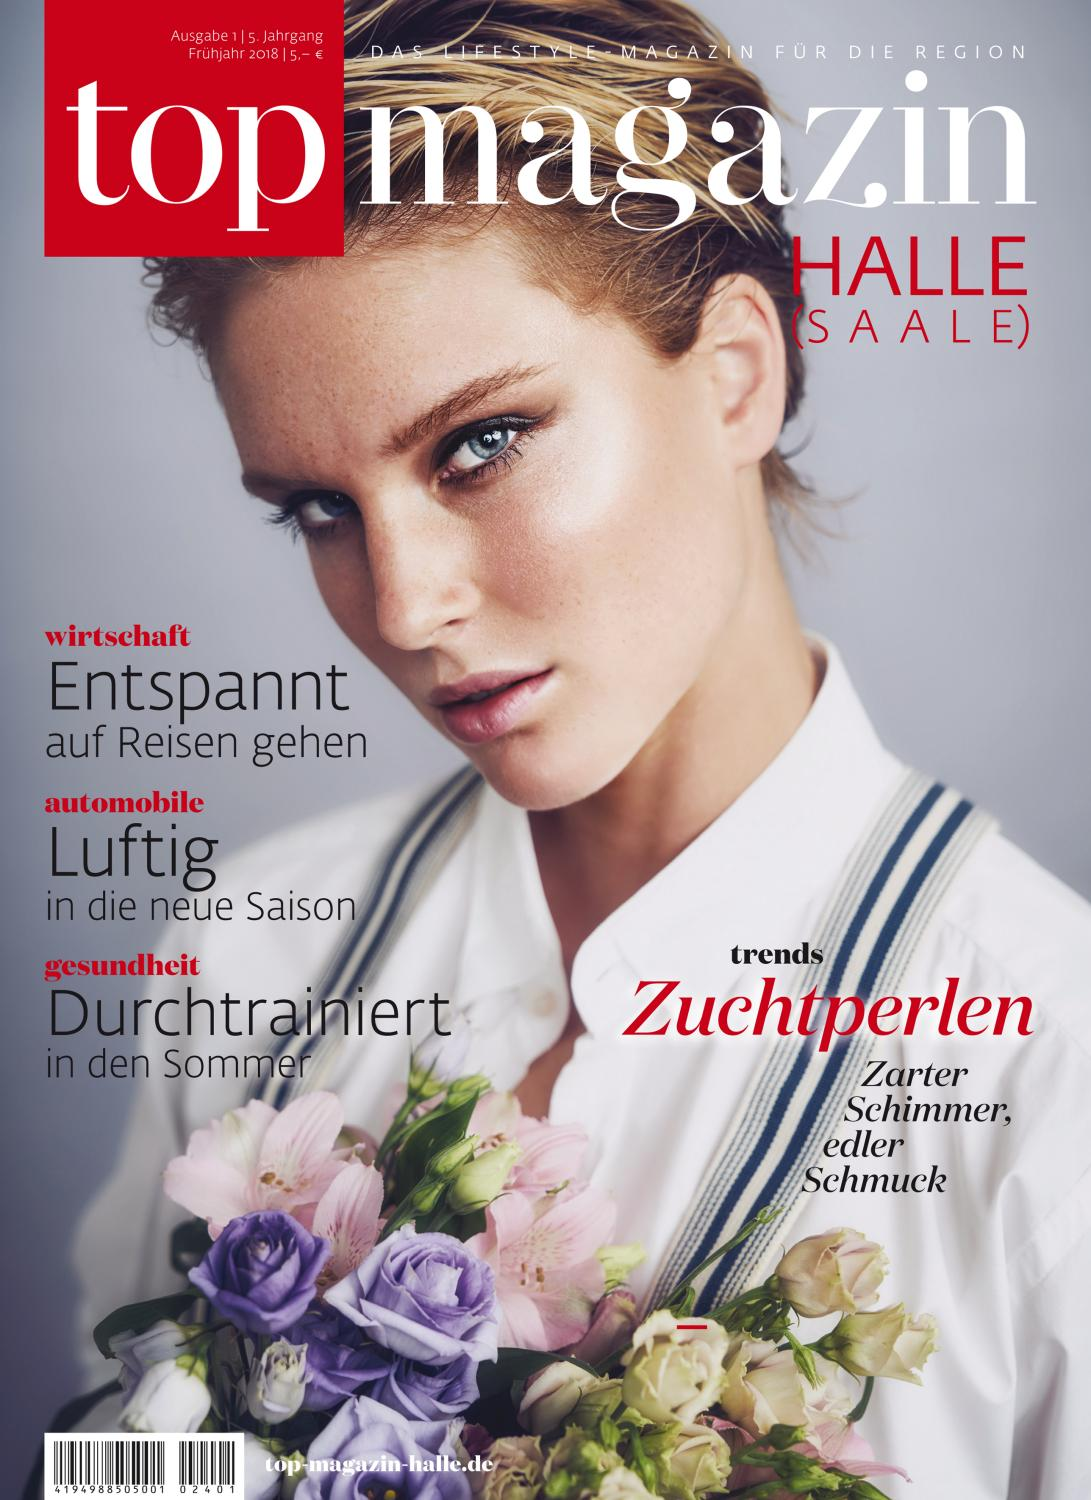 Top Magazin Halle (Saale) Frühling 2018 by Top Magazin - issuu